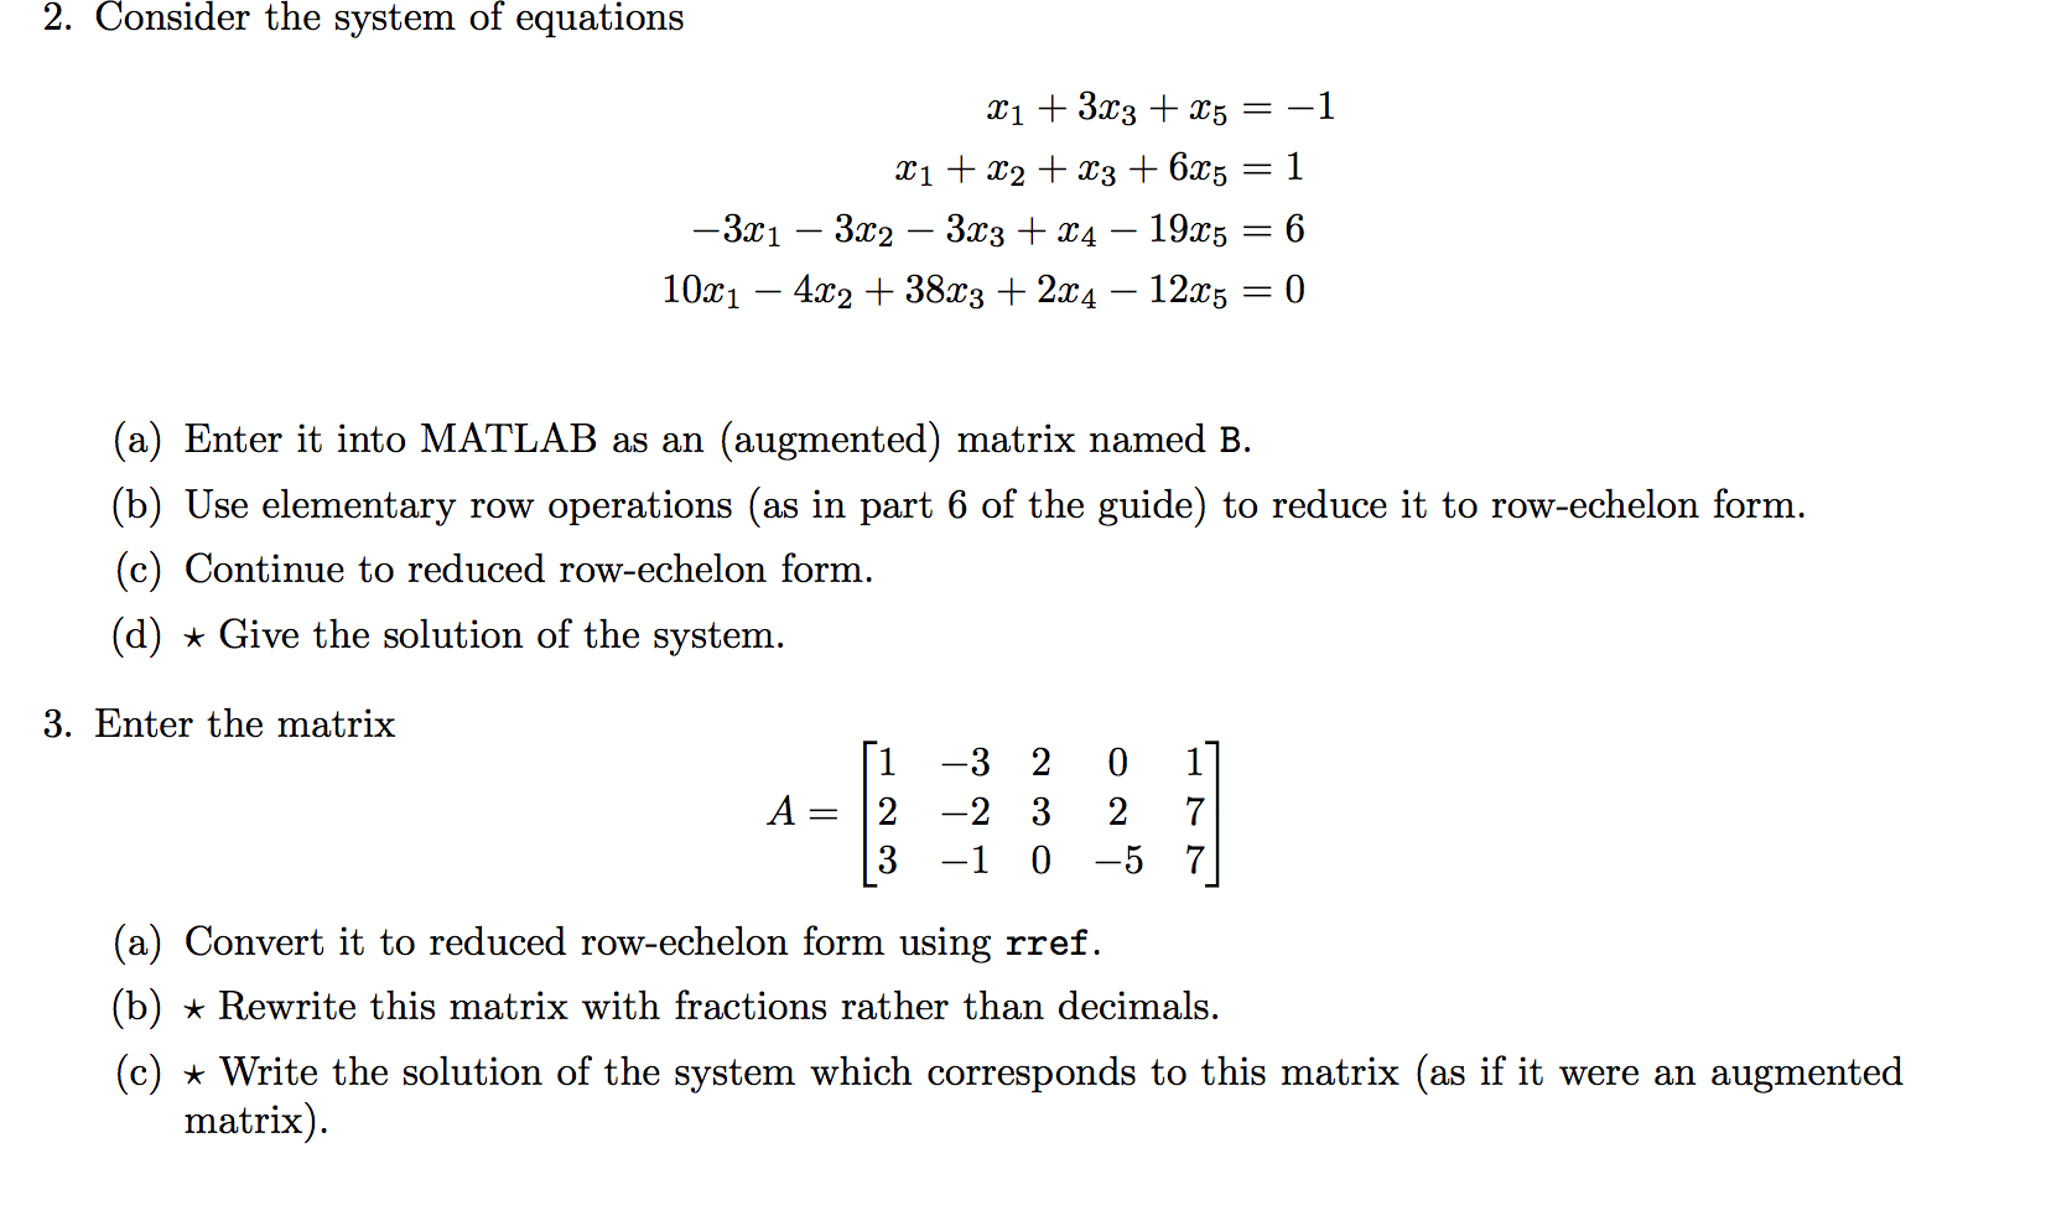 Need Help With This Problem Using On MATLAB Code. ... | Chegg.com